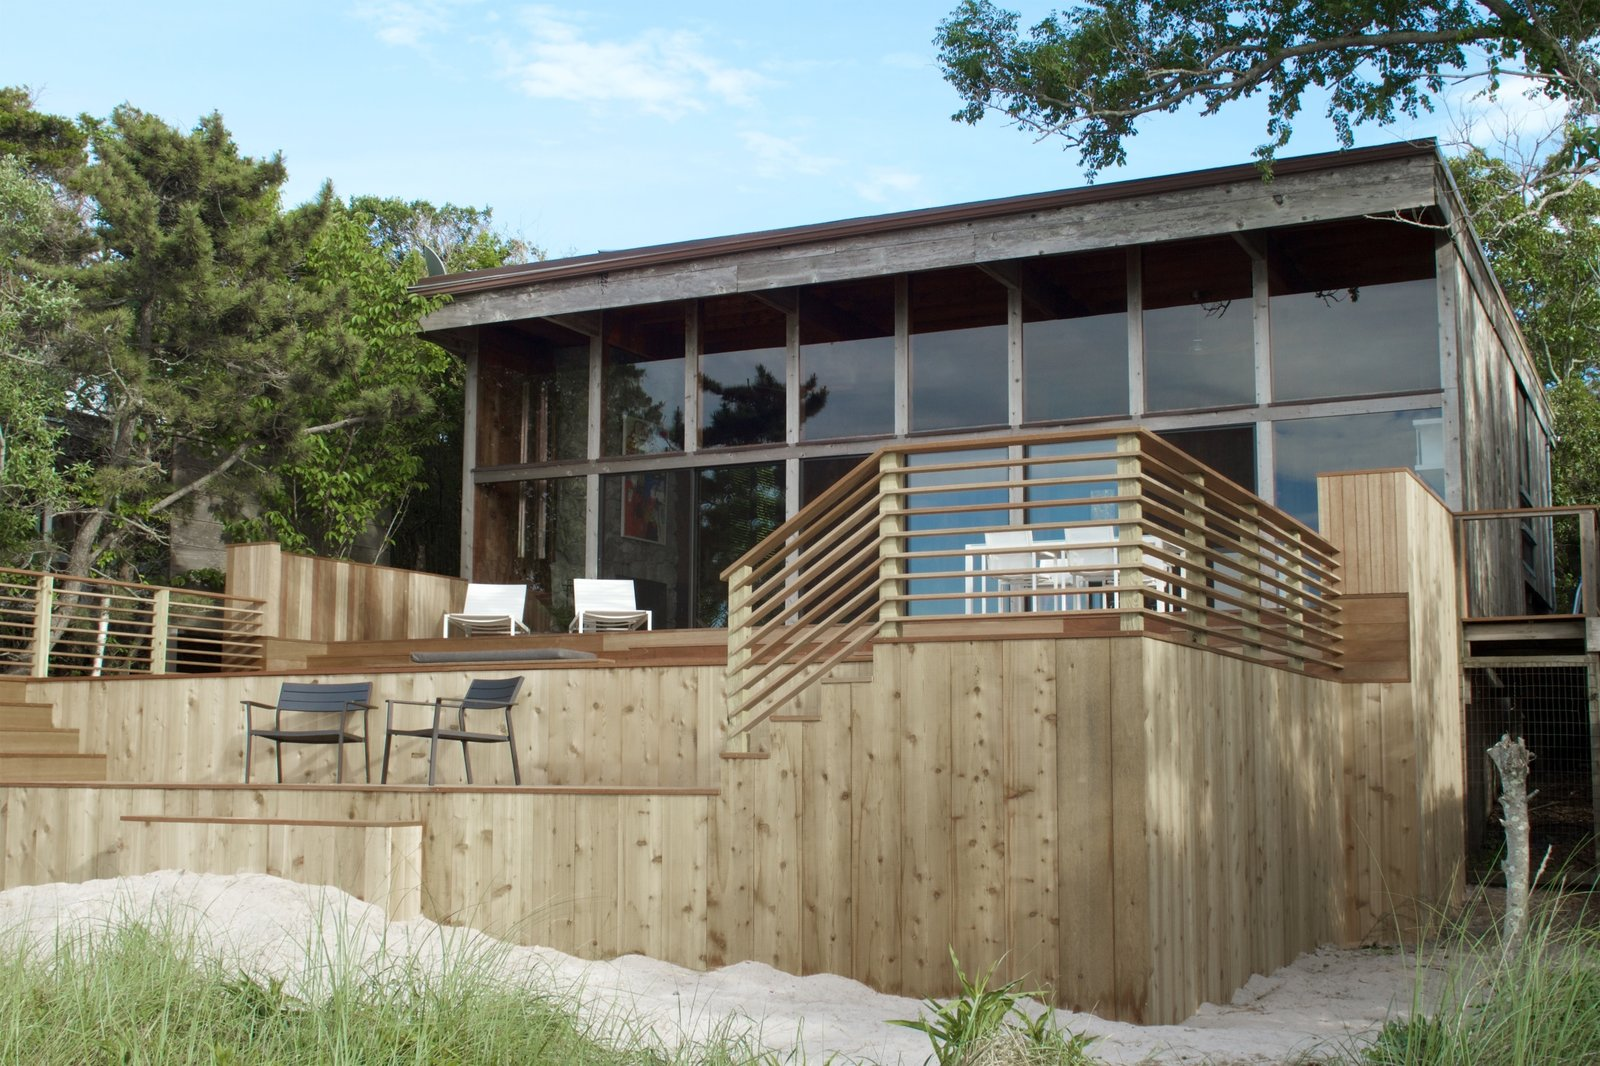 Photo 1 of 10 in A Respectfully Renovated Modern Beach House on Fire Island Asks $1.8M